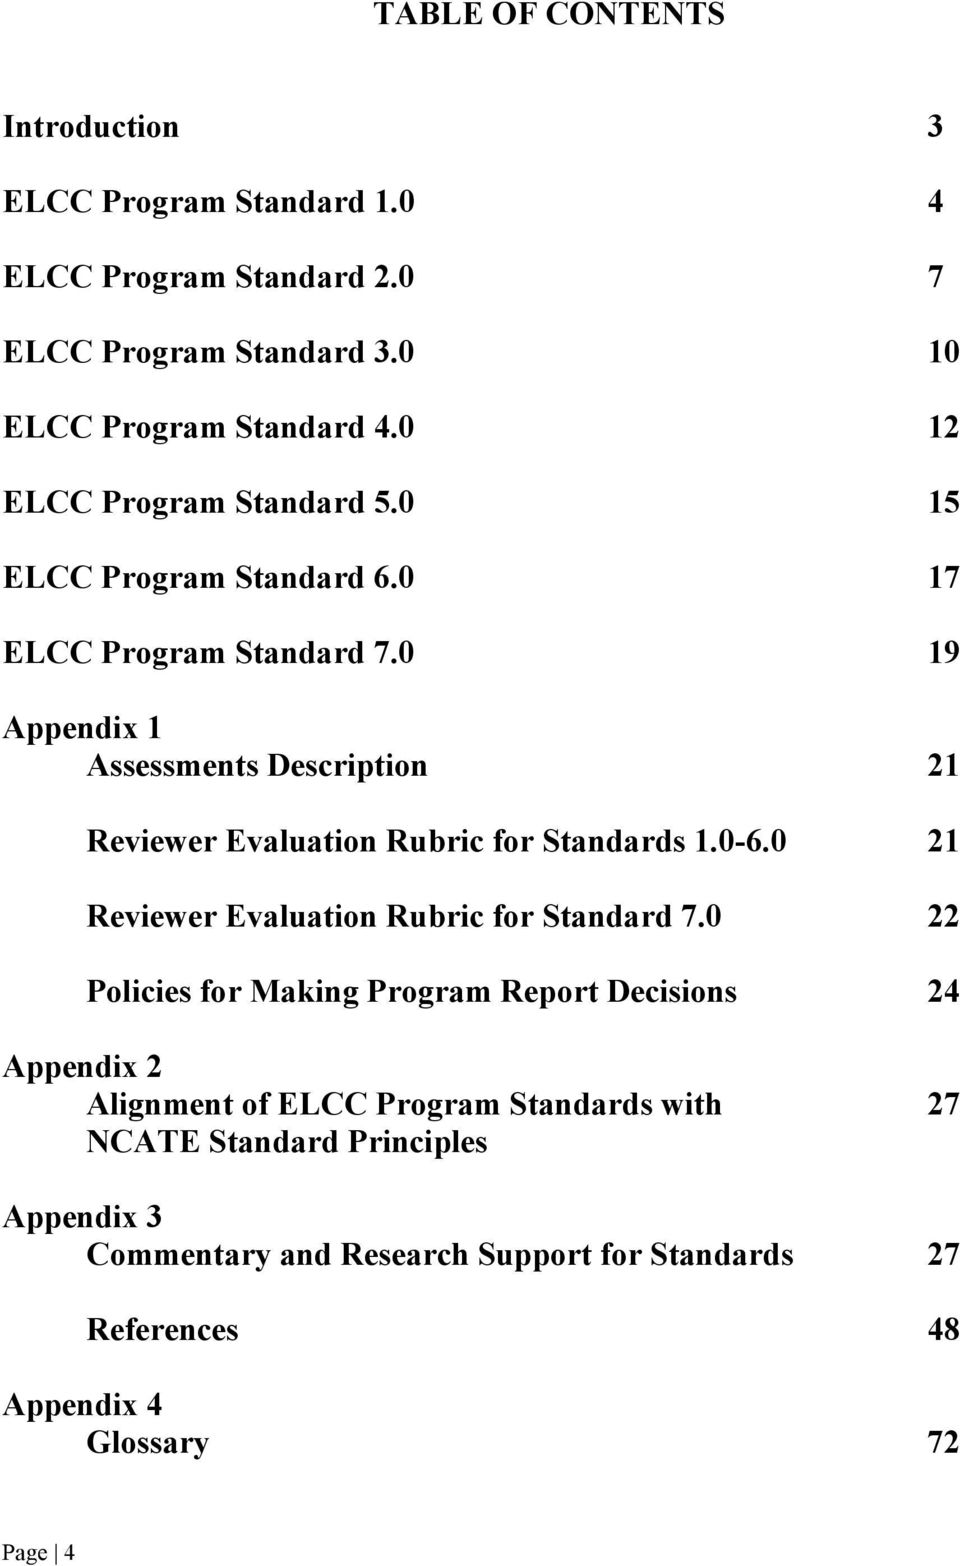 0 19 Appendix 1 Assessments Description 21 Reviewer Evaluation Rubric for Standards 1.0-6.0 21 Reviewer Evaluation Rubric for Standard 7.